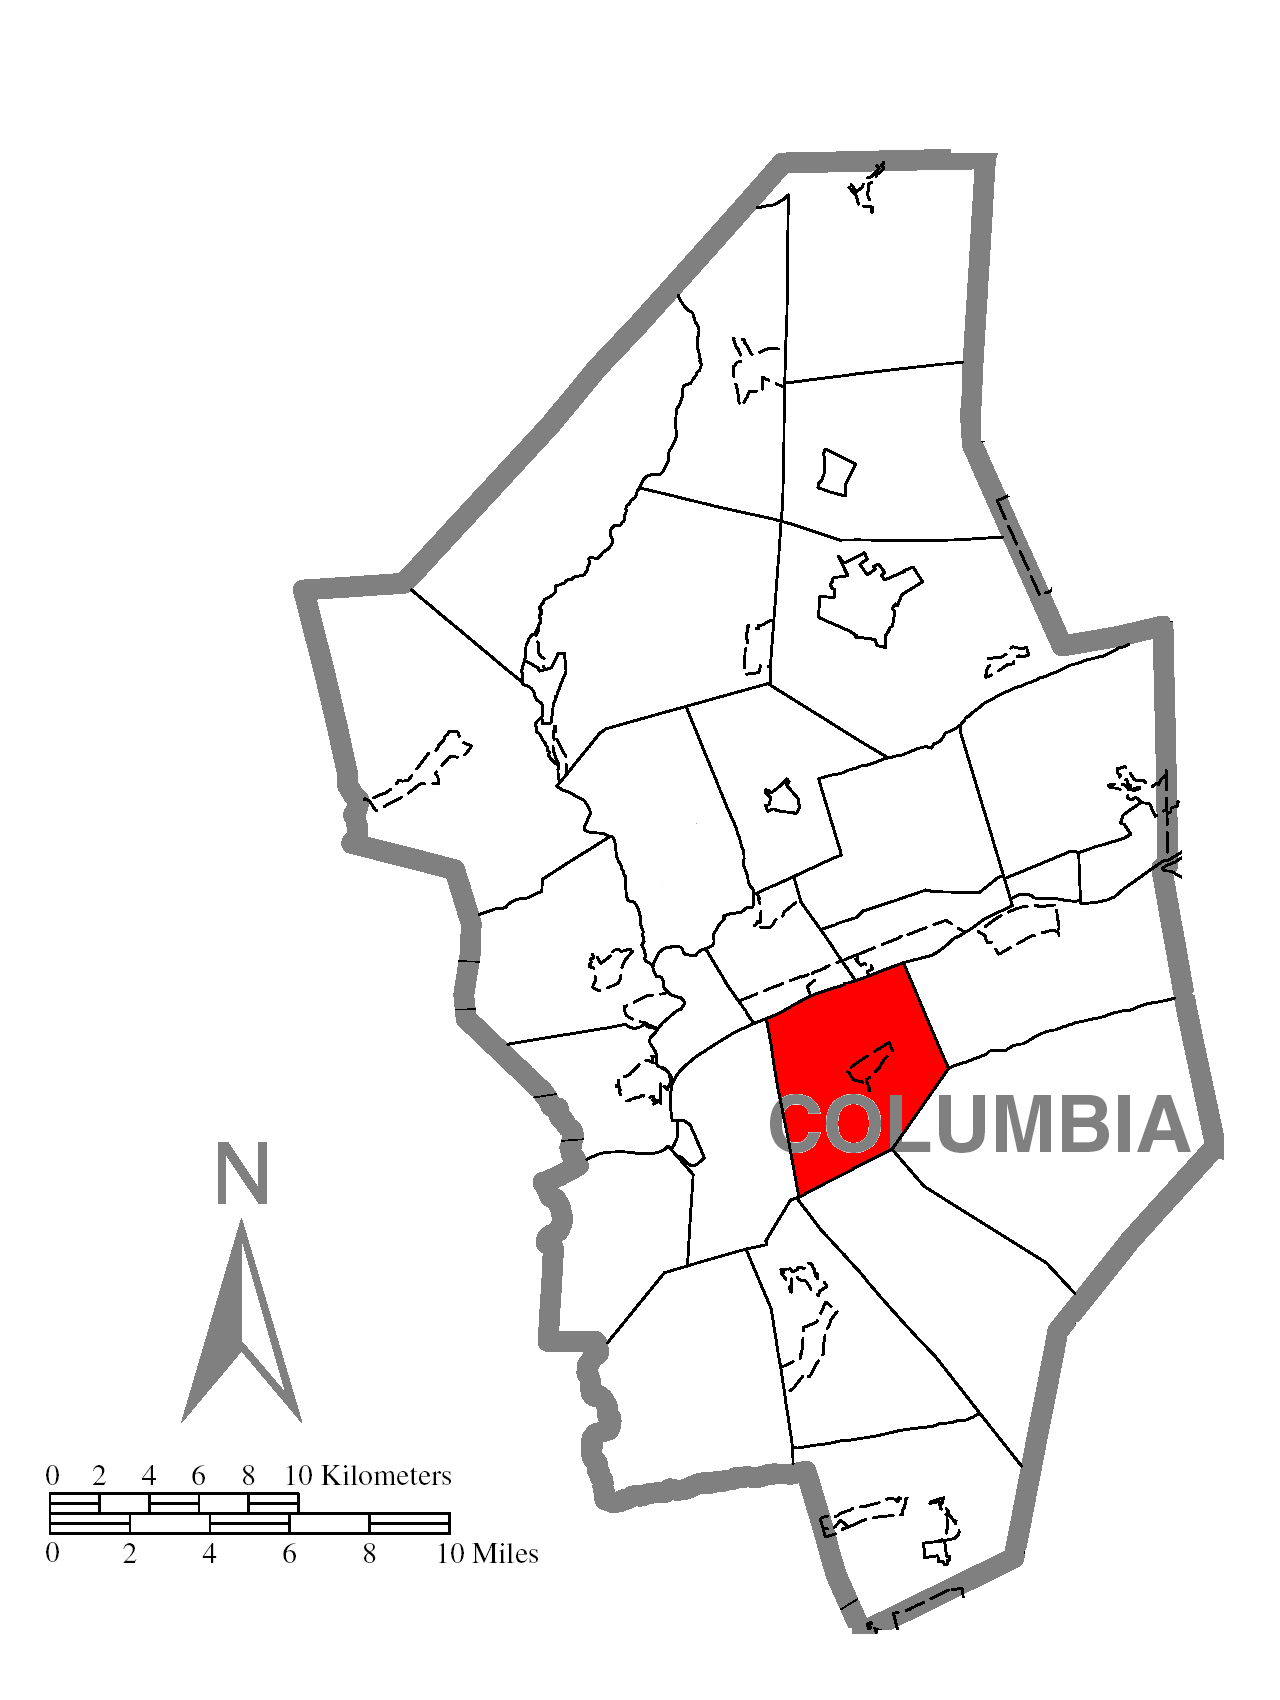 File:Map Of Main Township, Columbia County, Pennsylvania Map Of Main Township%2C Columbia County%2C Pennsylvania Highlighted File:Map Of Main Township, Columbia County, Pennsylvania Highlightedpng